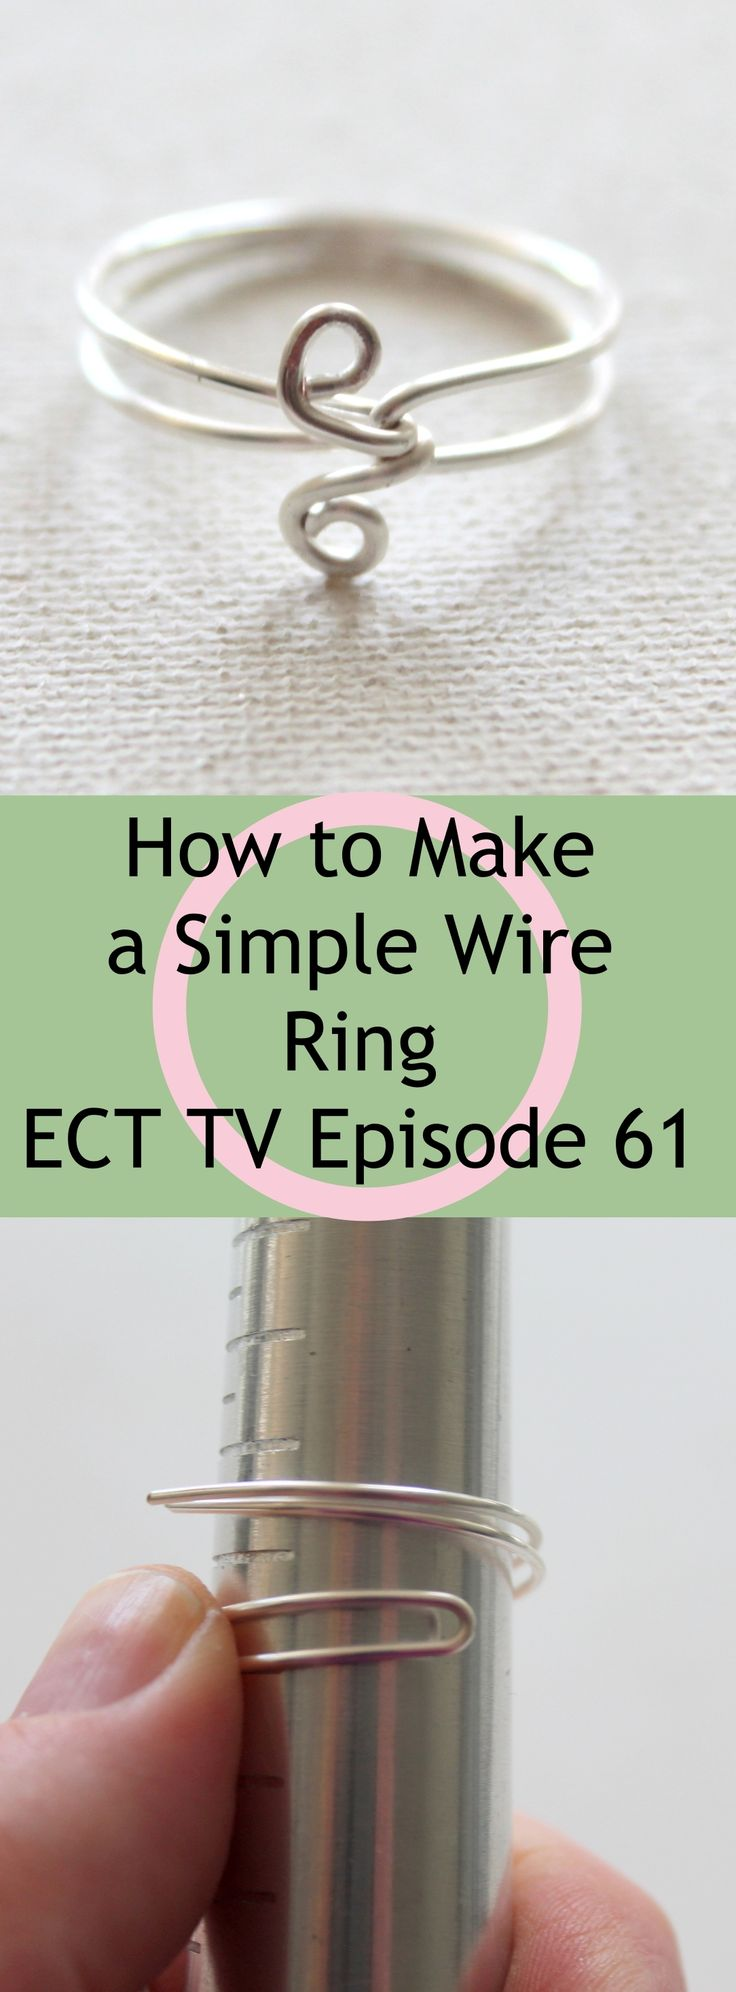 How to Make a Simple Wire Ring - video tutorial plus step-by-step photo instructions!